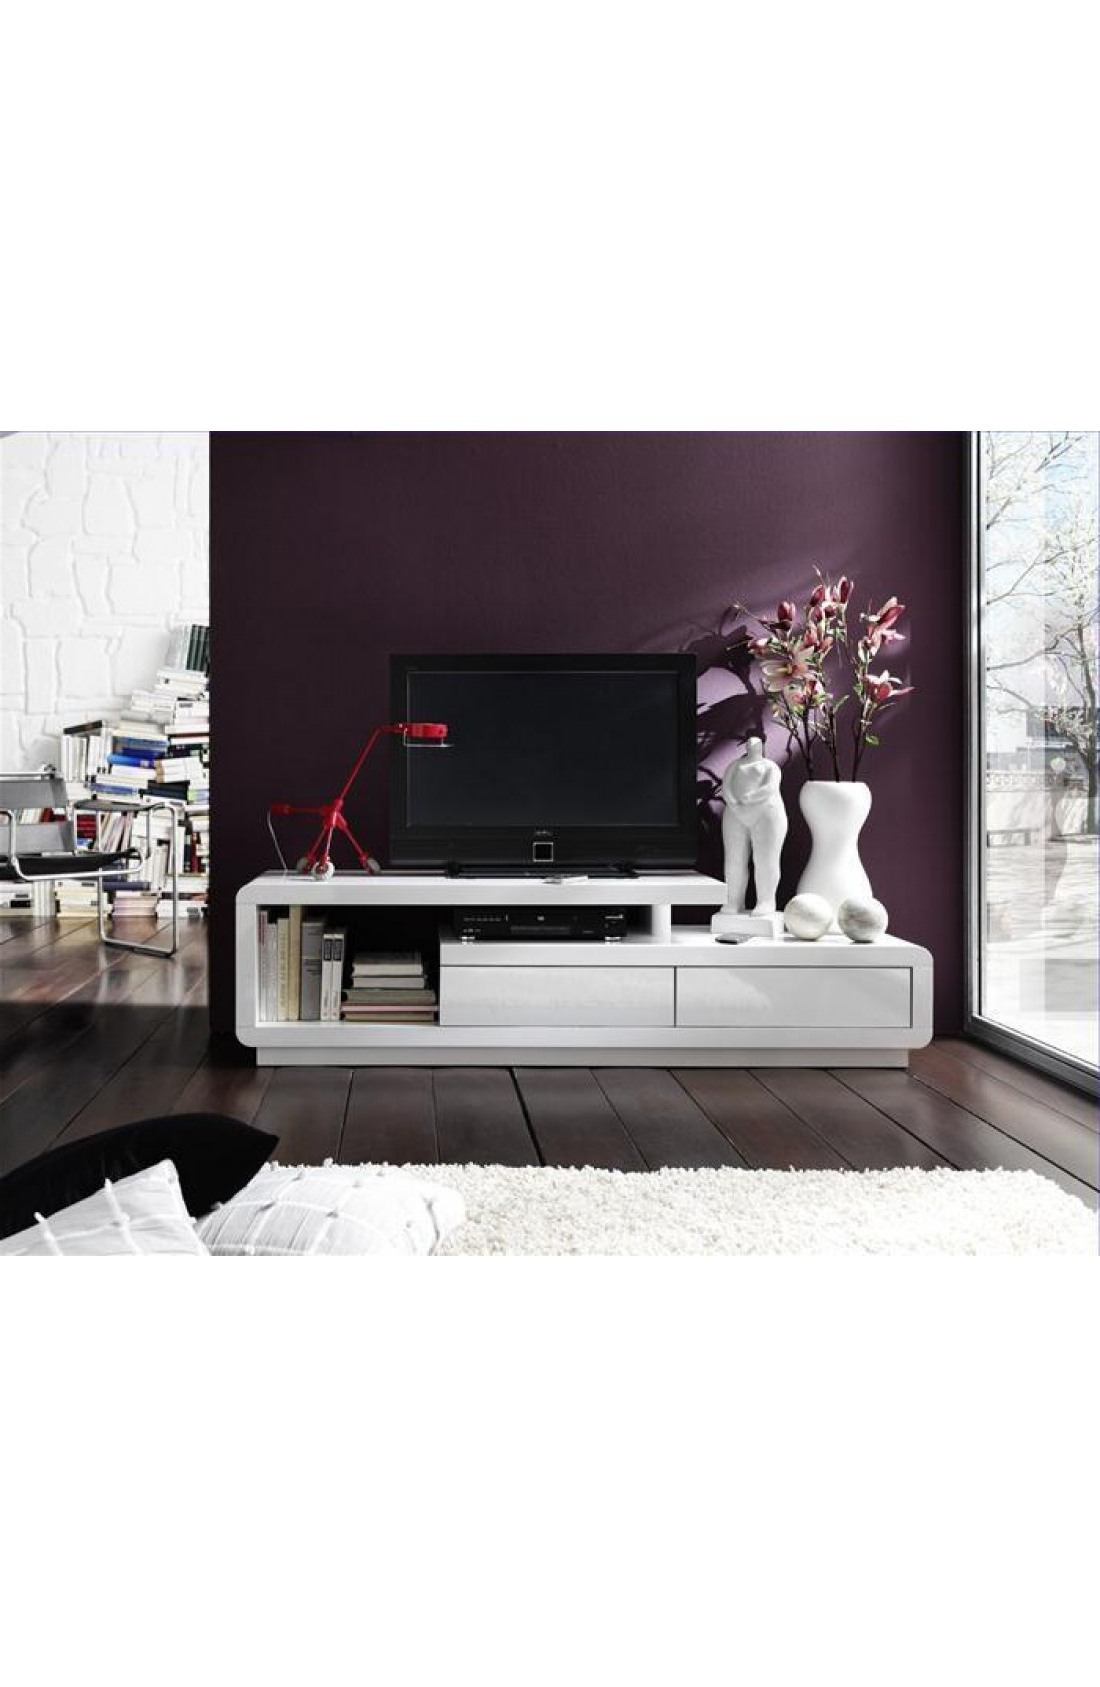 Modanuvo White Gloss Tv Unit Cabinet With Drawers With Regard To 2017 White High Gloss Tv Unit (View 5 of 20)